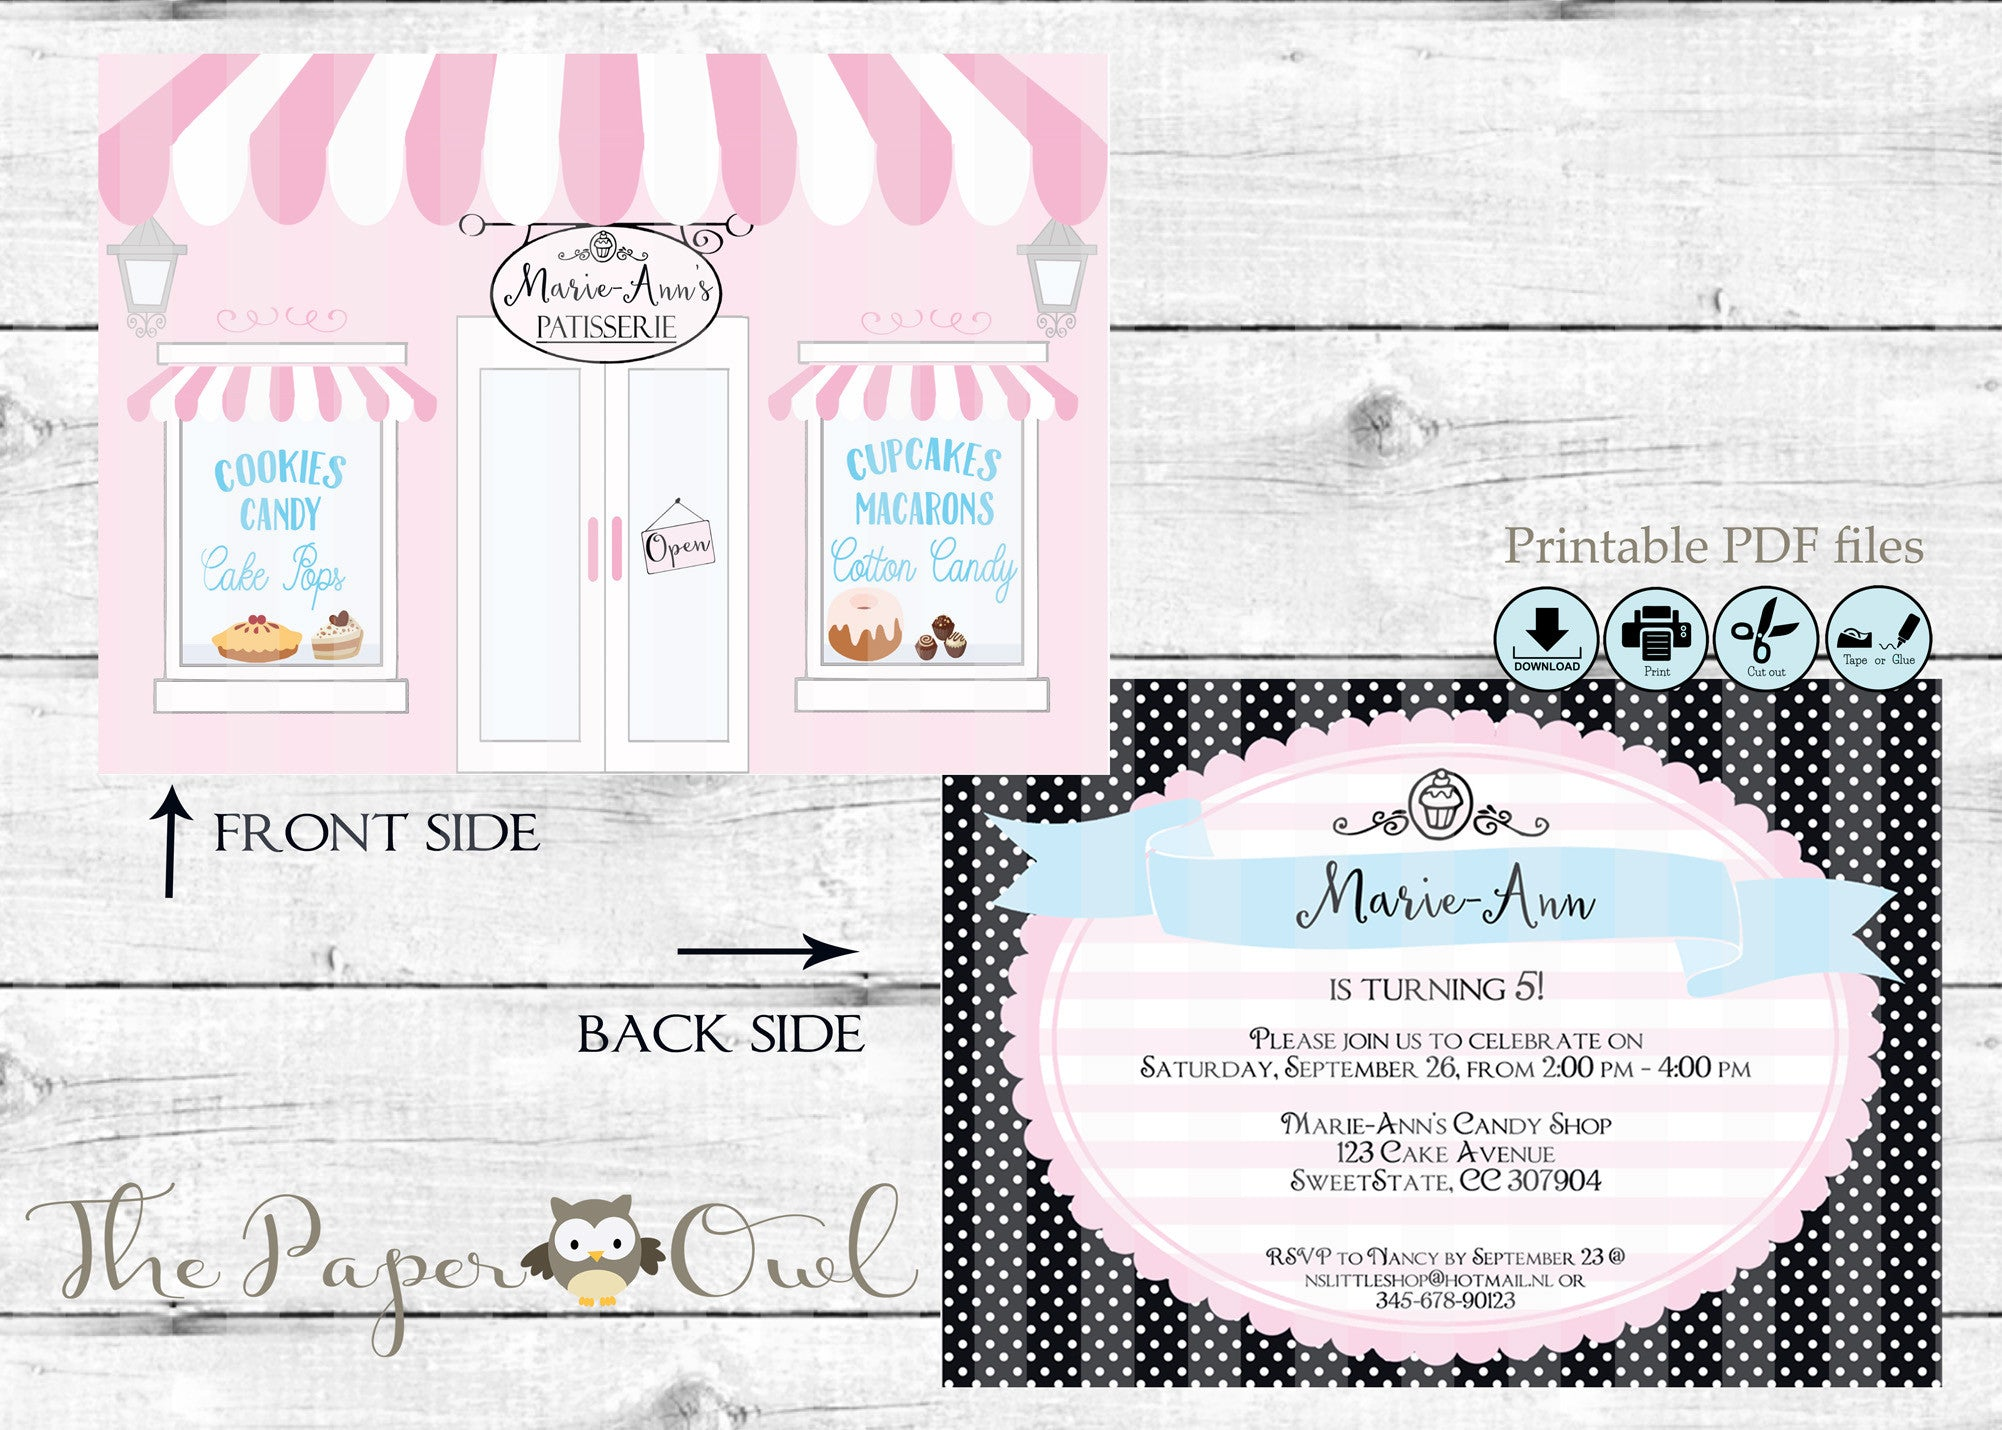 Printable Cake Bakery Shop party invitation, customize yourself– The Paper Owl